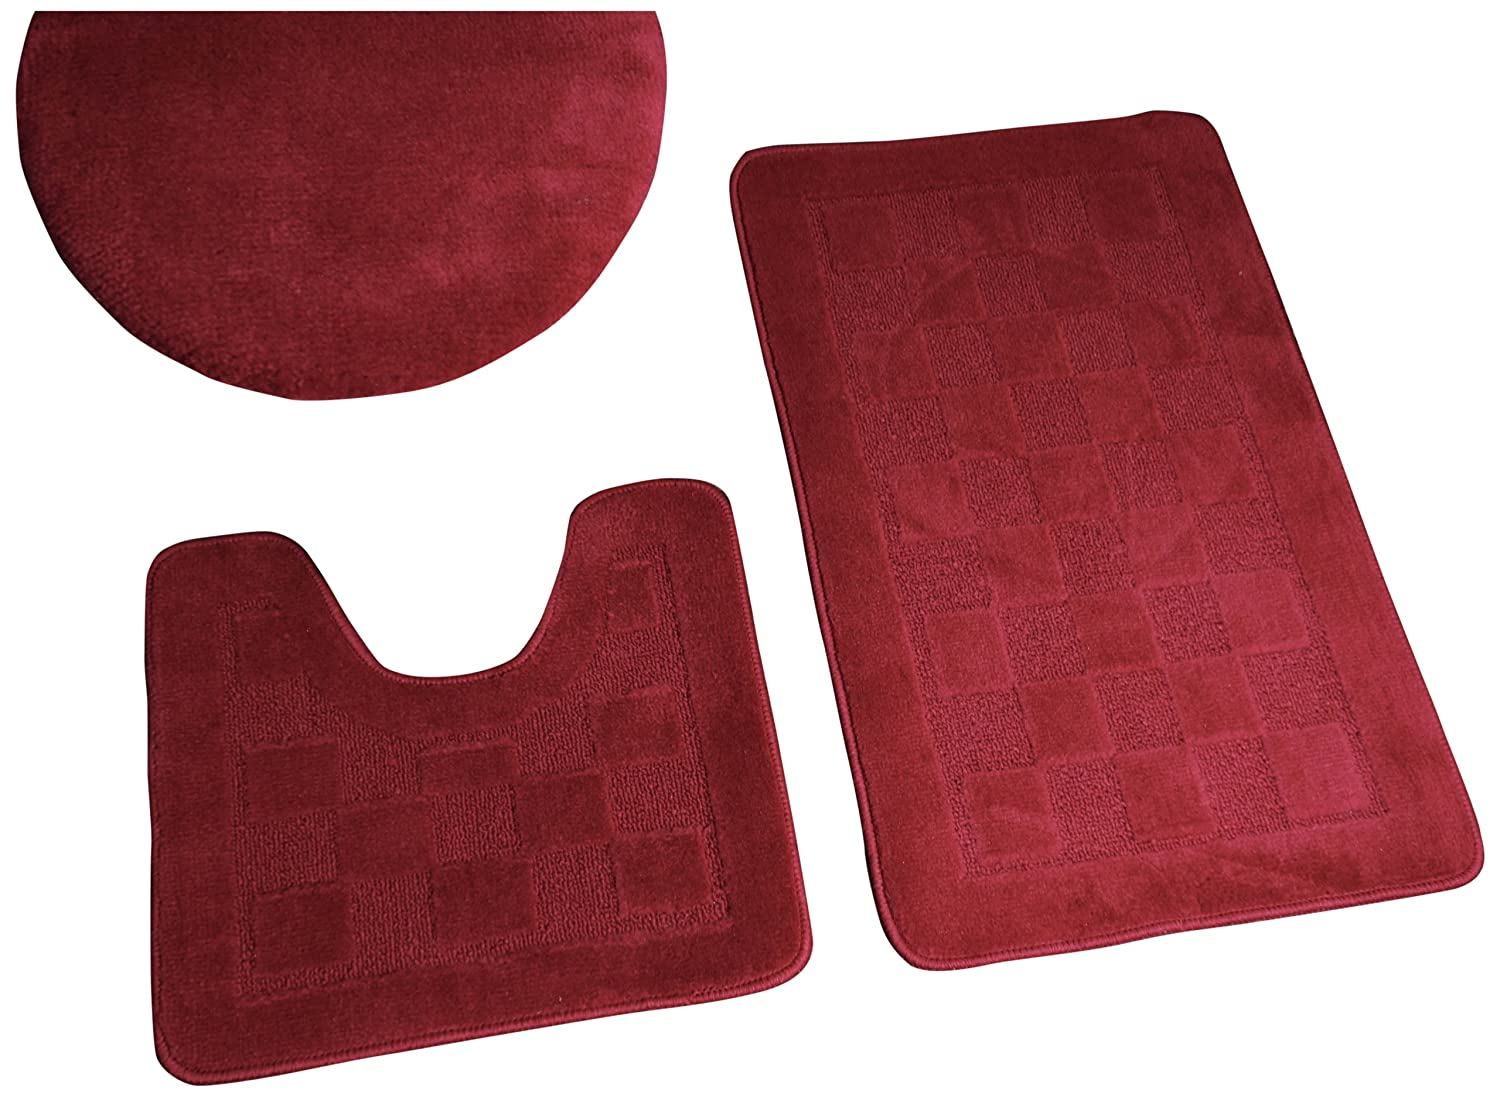 Bathroom rug set - Amazon Com Dainty Home 3 Piece Bath Set With Rug Contour Lid Cover Burgundy Home Kitchen